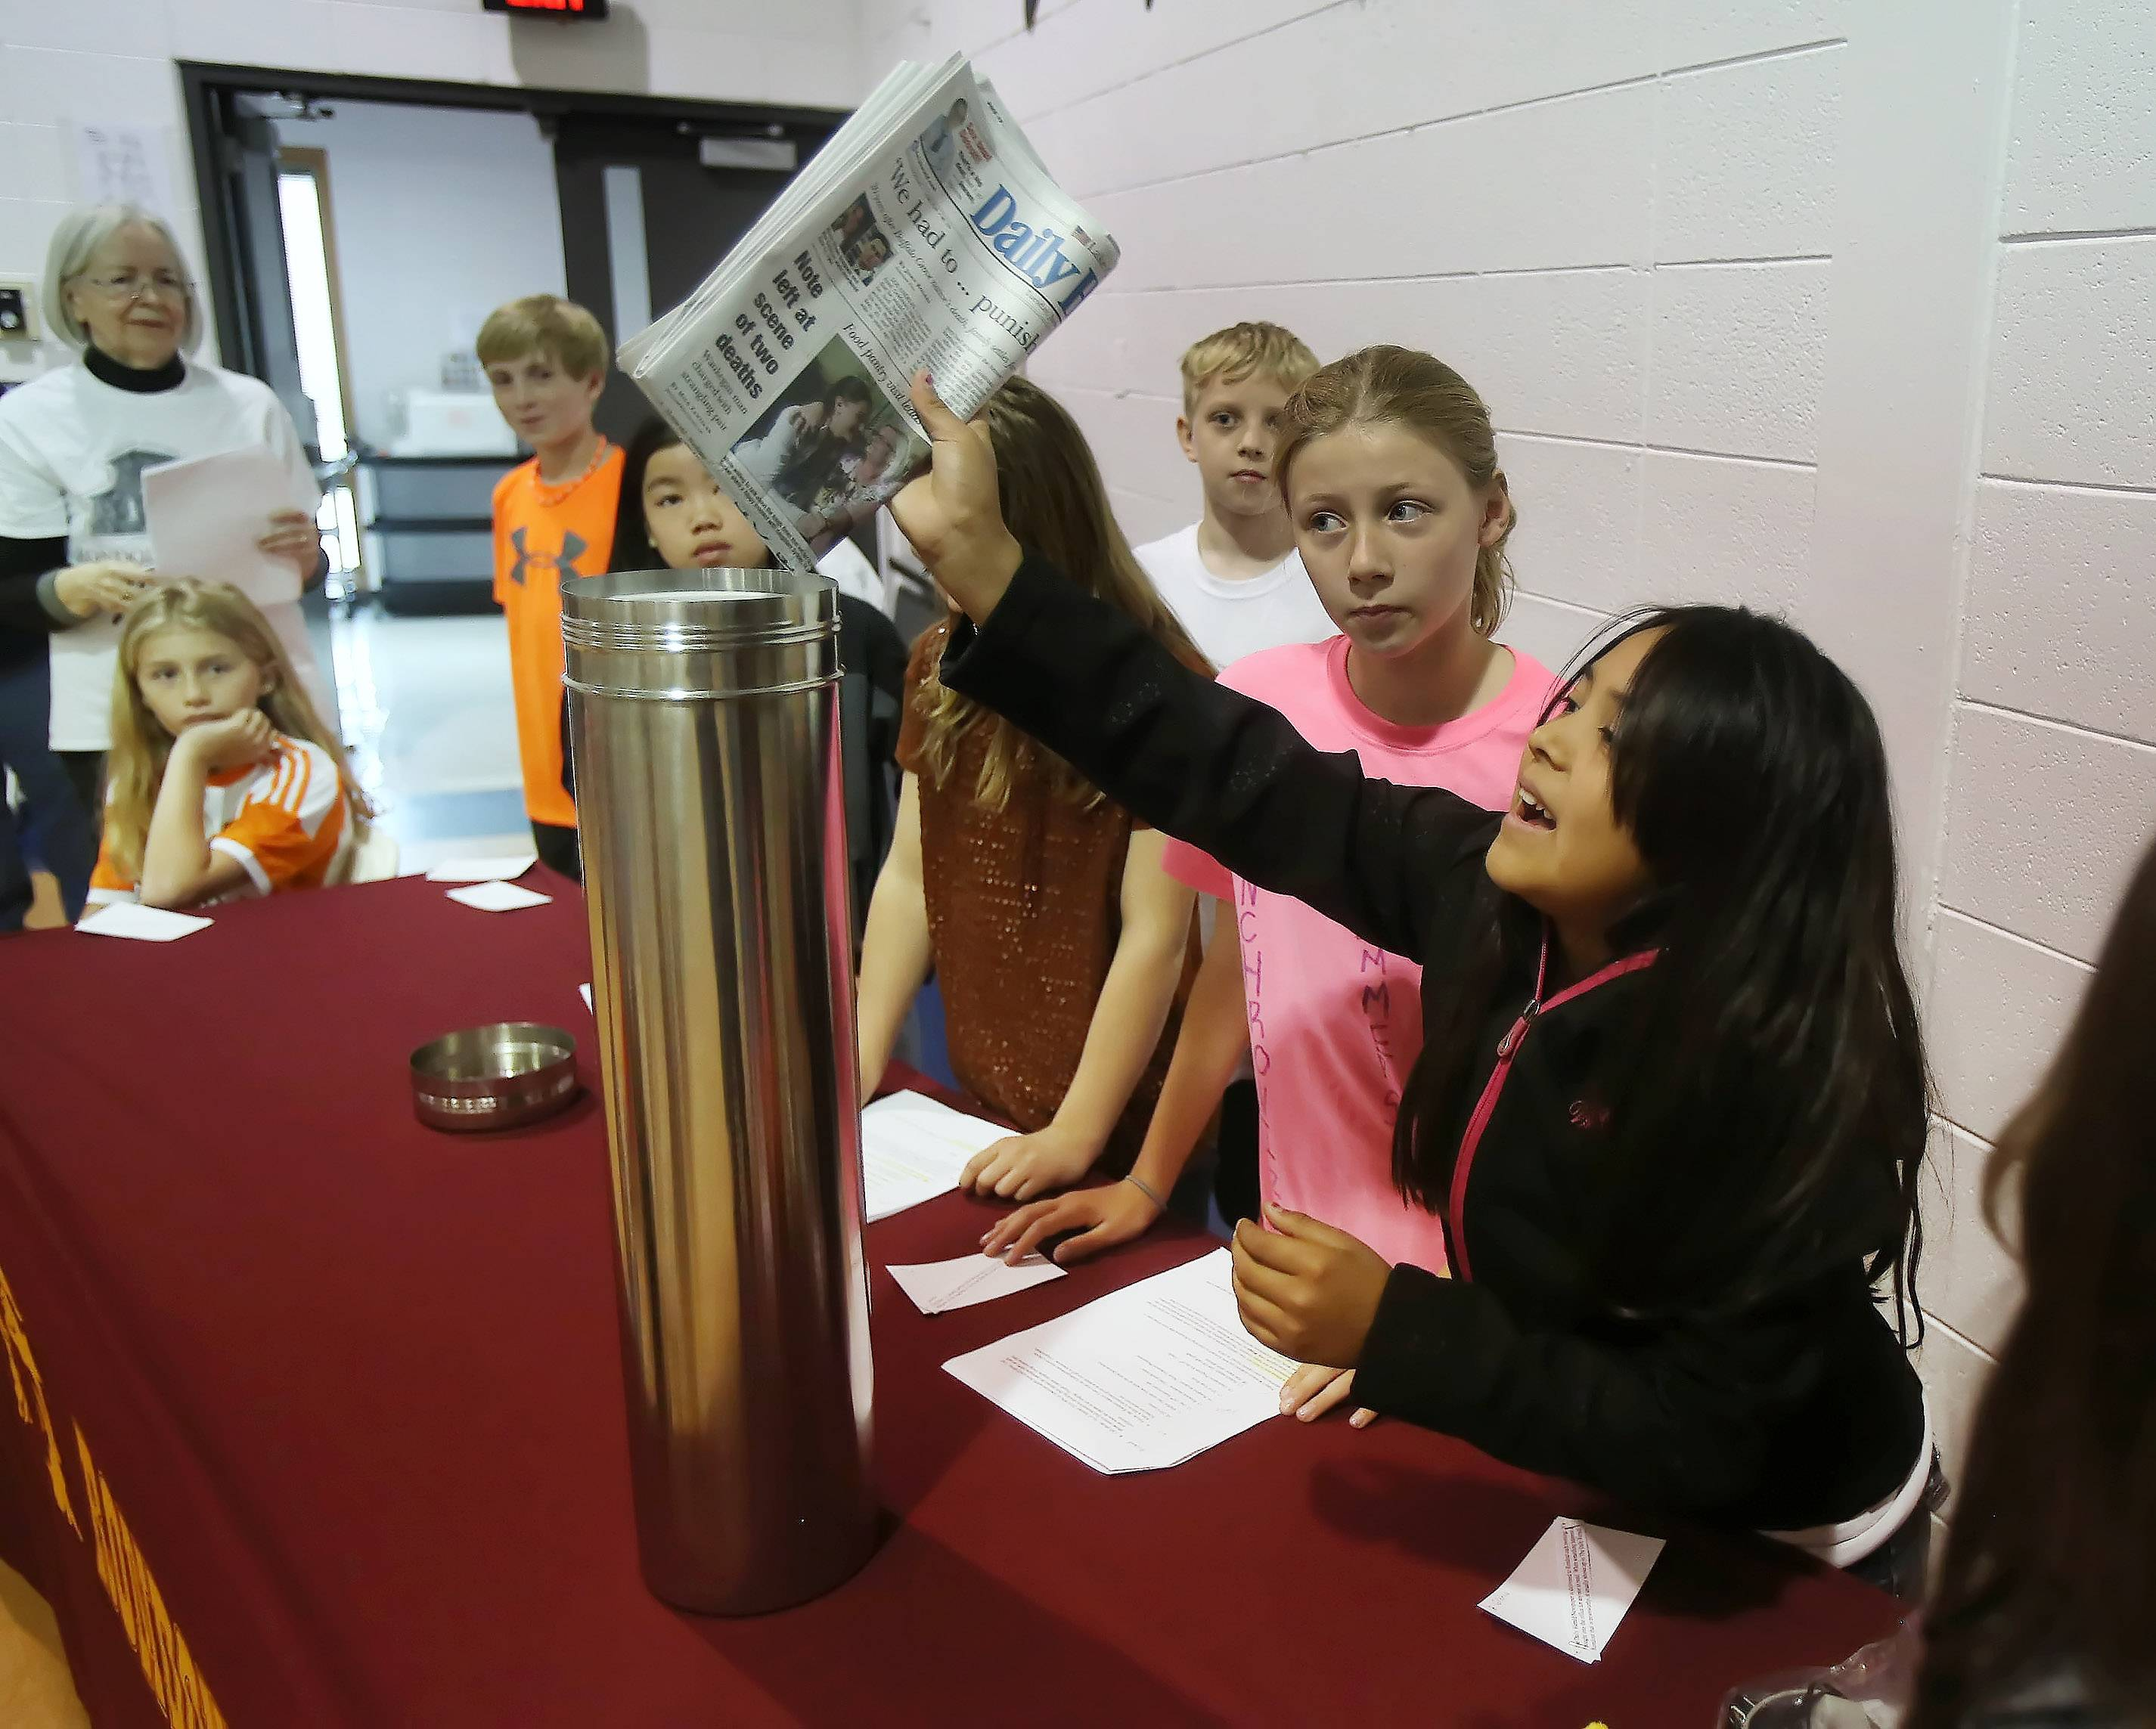 Fourth grader Gloria Barbosa-Gomez places a newspaper in a time capsule during the Rondout Time Capsule Ceremony on the last day of school as part of Rondout School District's Sesquicentennial Celebration. Some of the items inside the capsule included a flash drive, a cellphone, a newspaper, Post-it's, a Toobaloo and the school mascot Falcon toy.